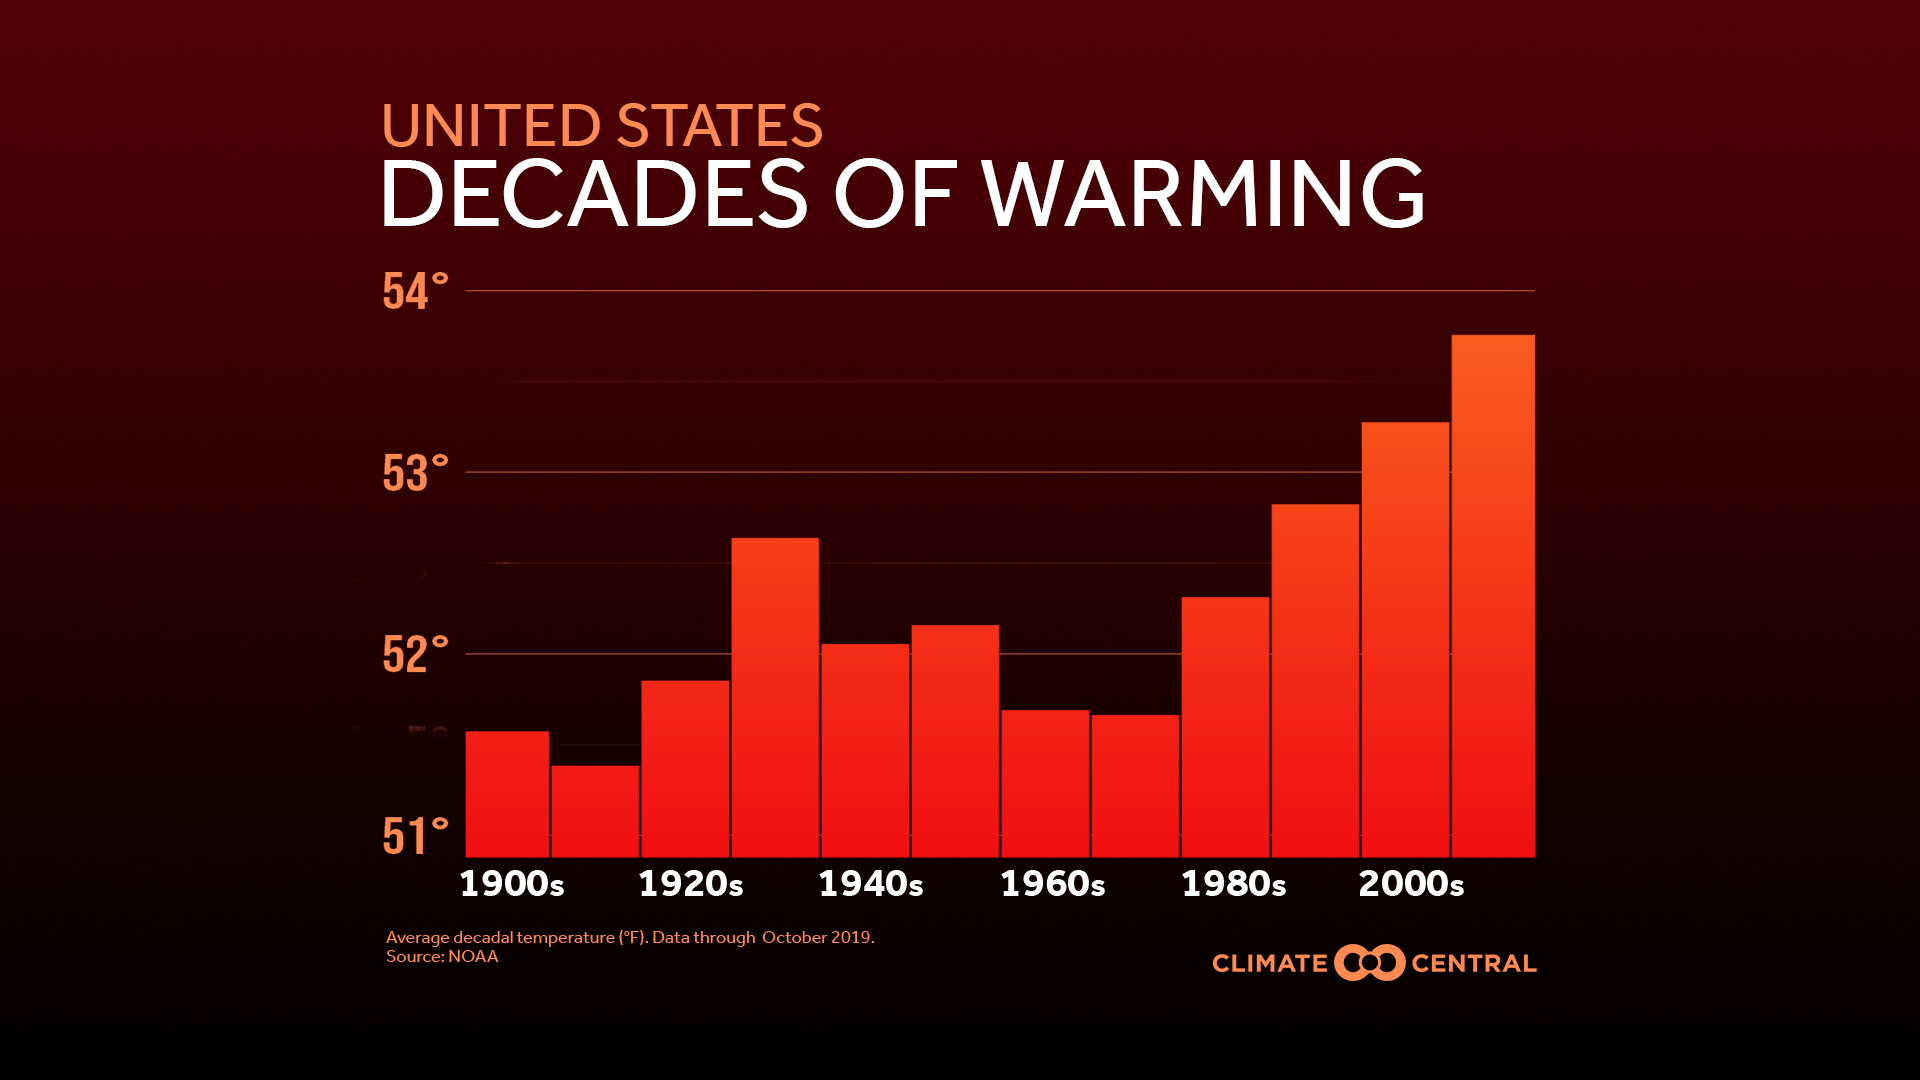 United States Decades of Warming